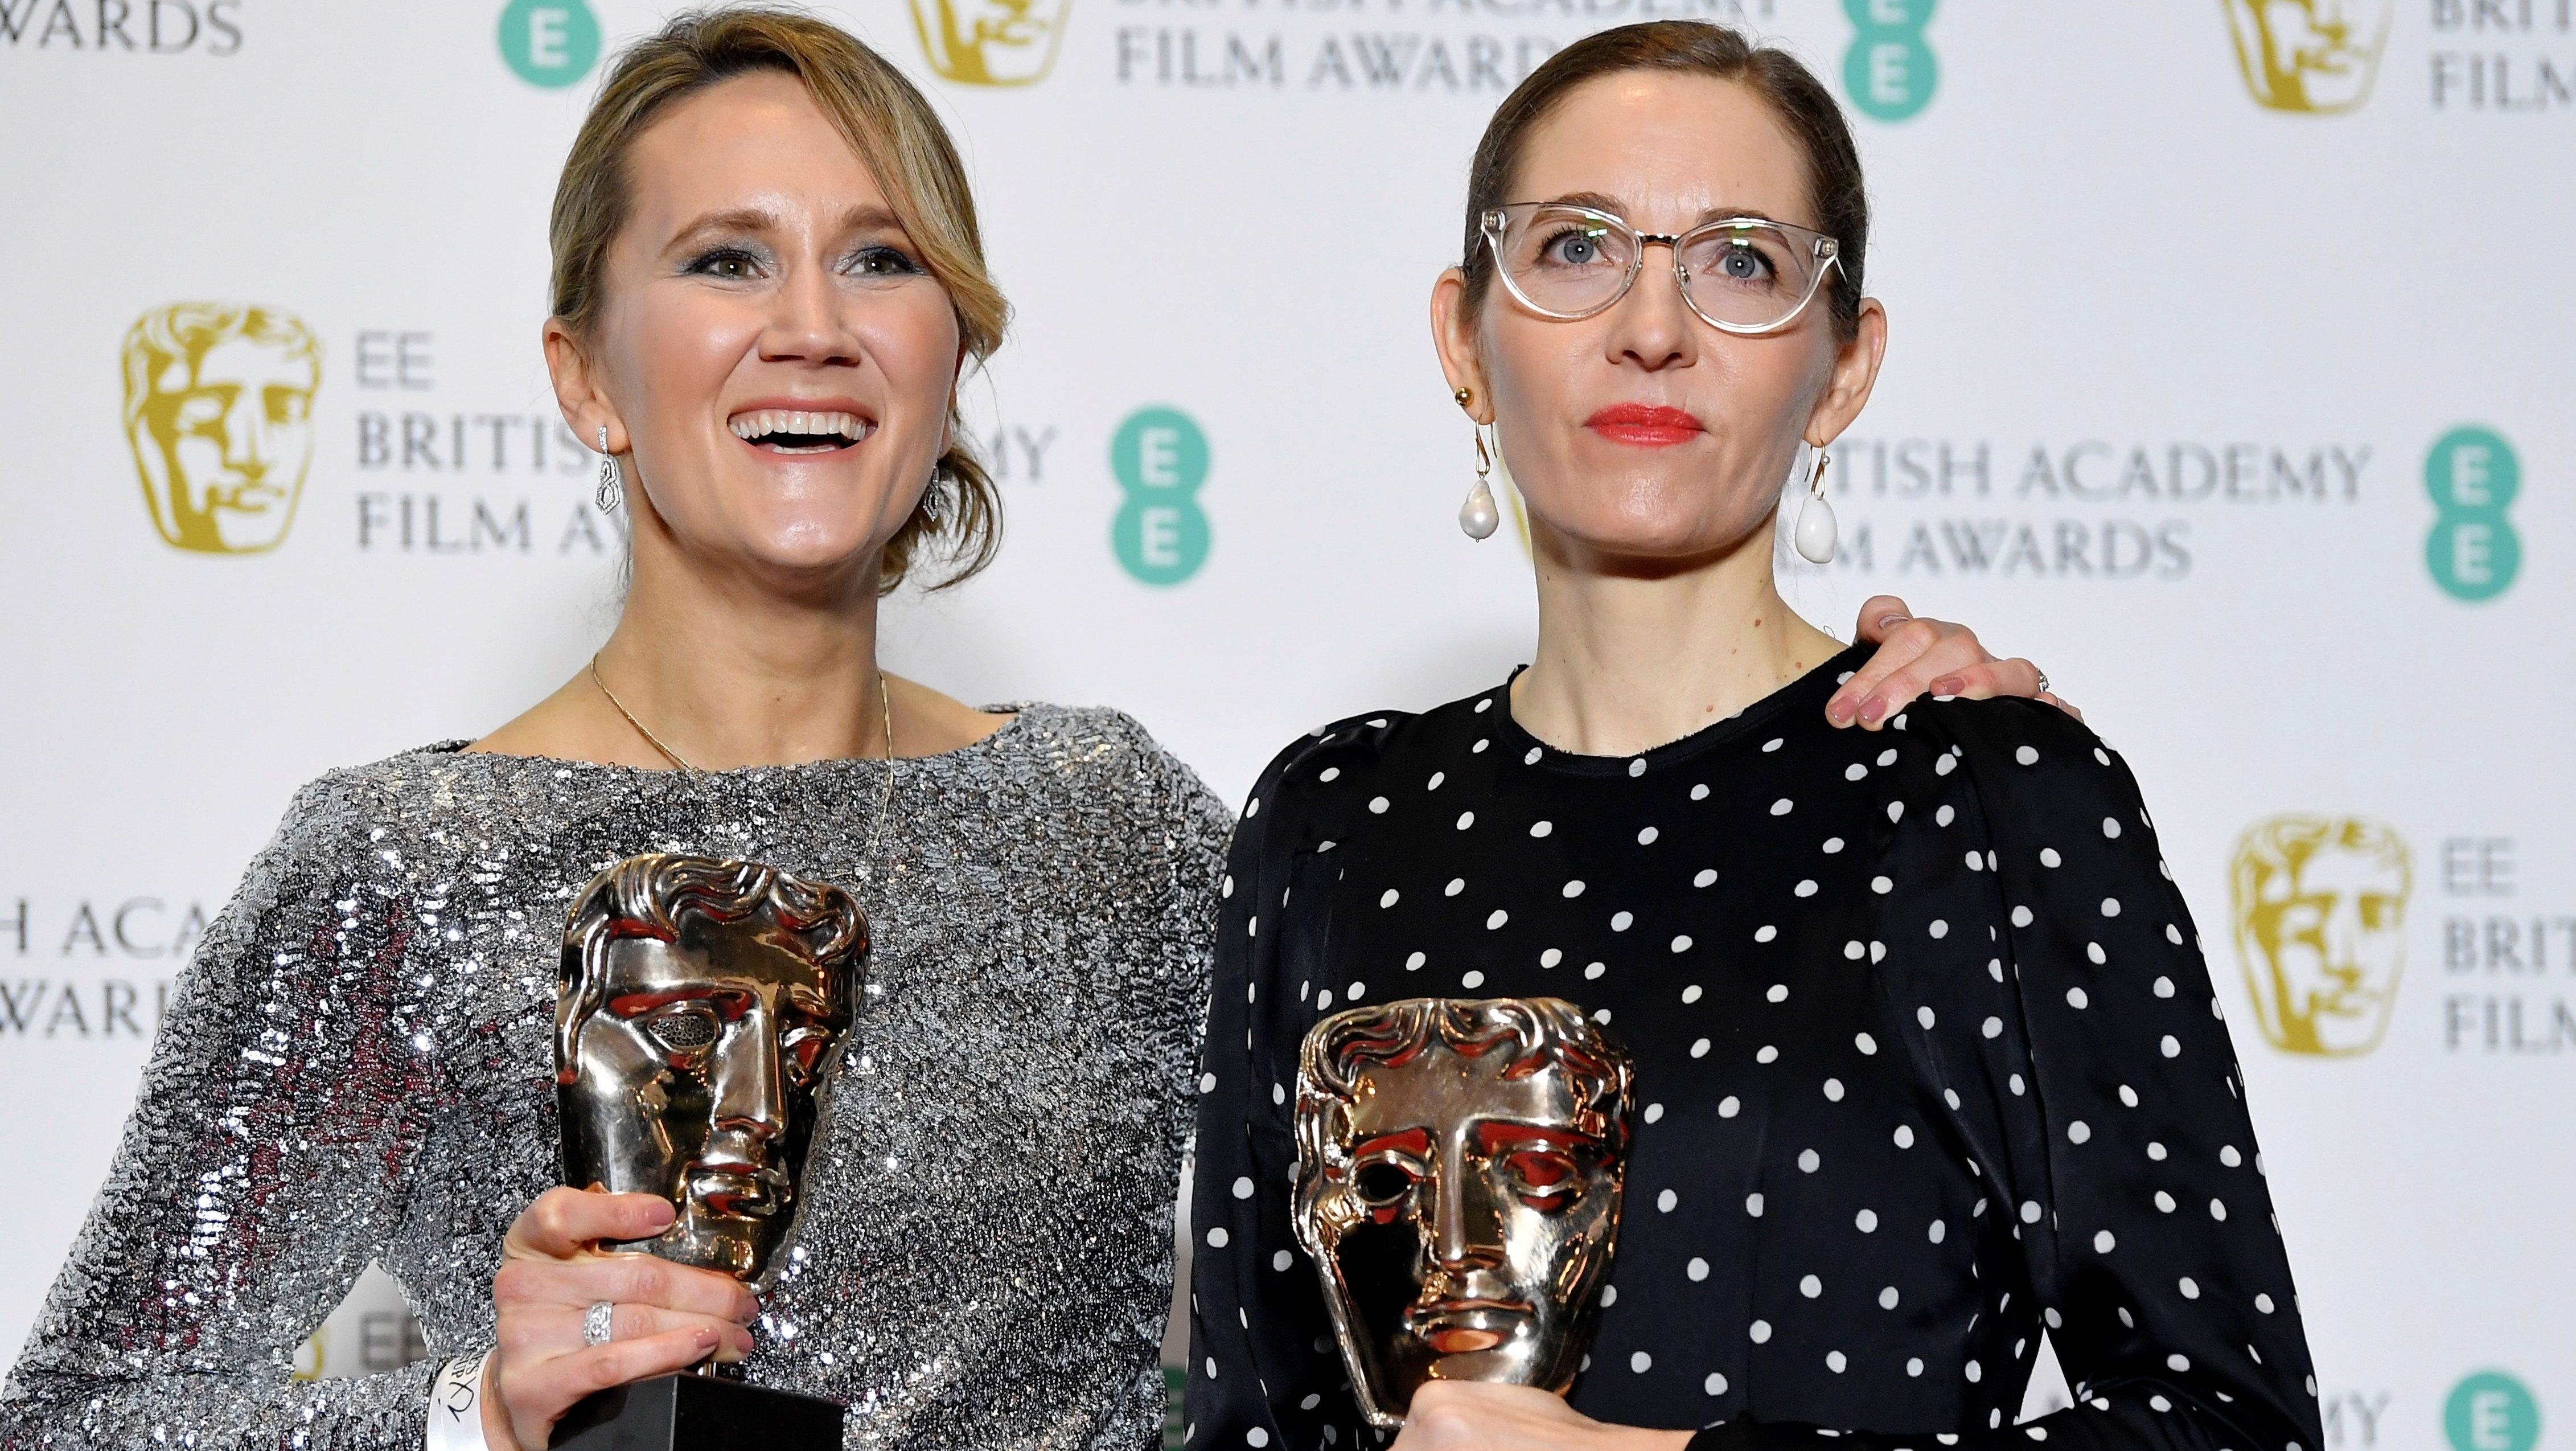 Alice Felton and Fiona Crombie hold their awards for Production Design for 'The Favourite' at the British Academy of Film and Television Awards (BAFTA)